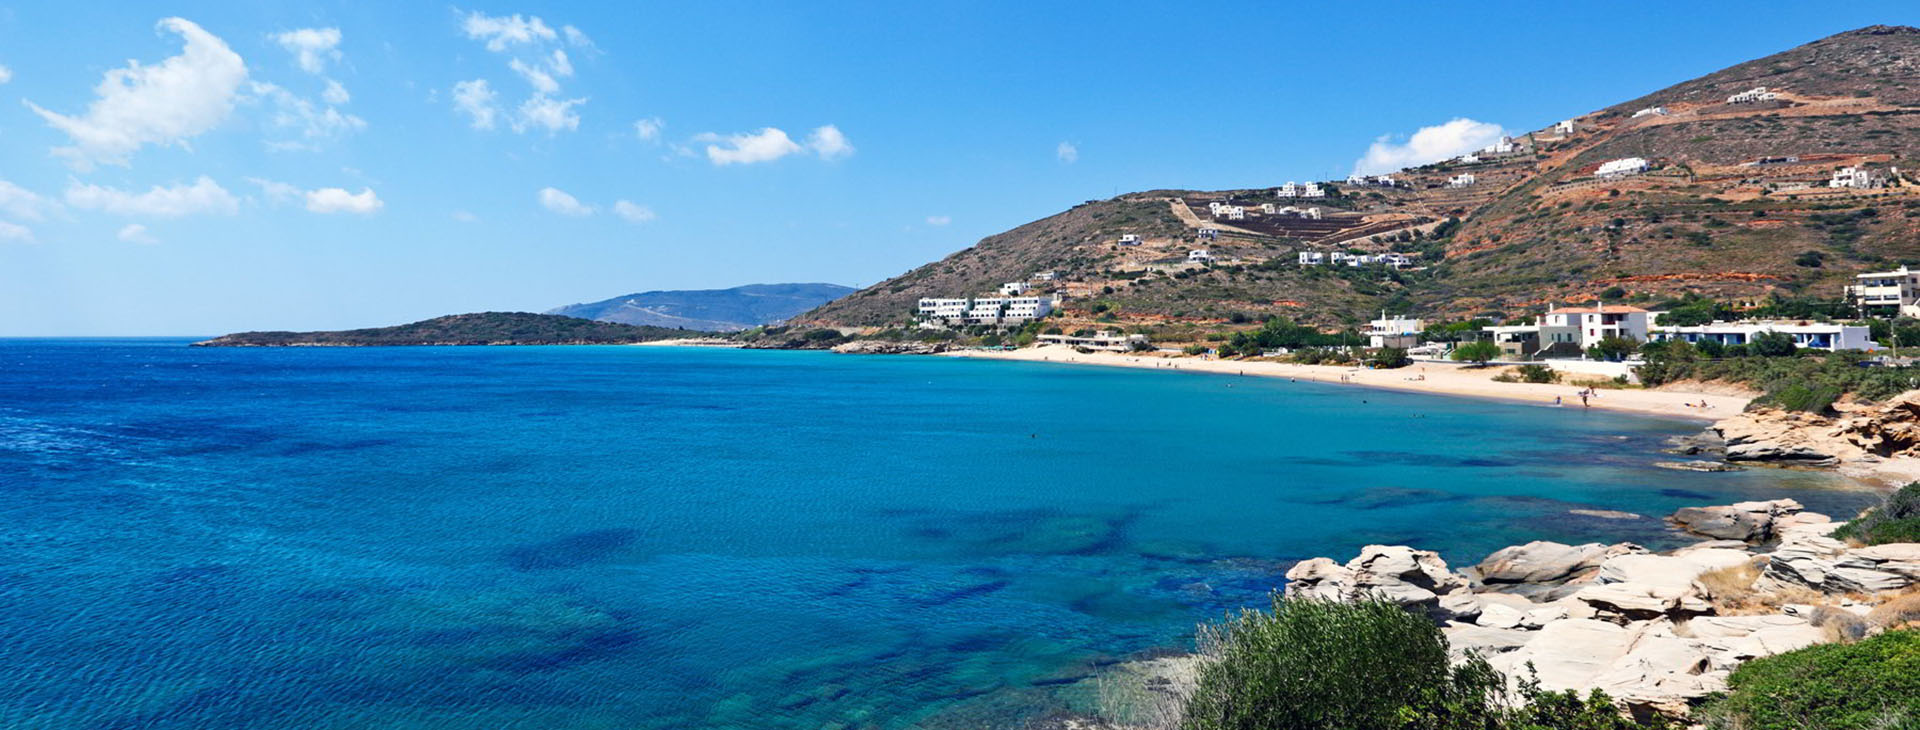 Beach at Andros island